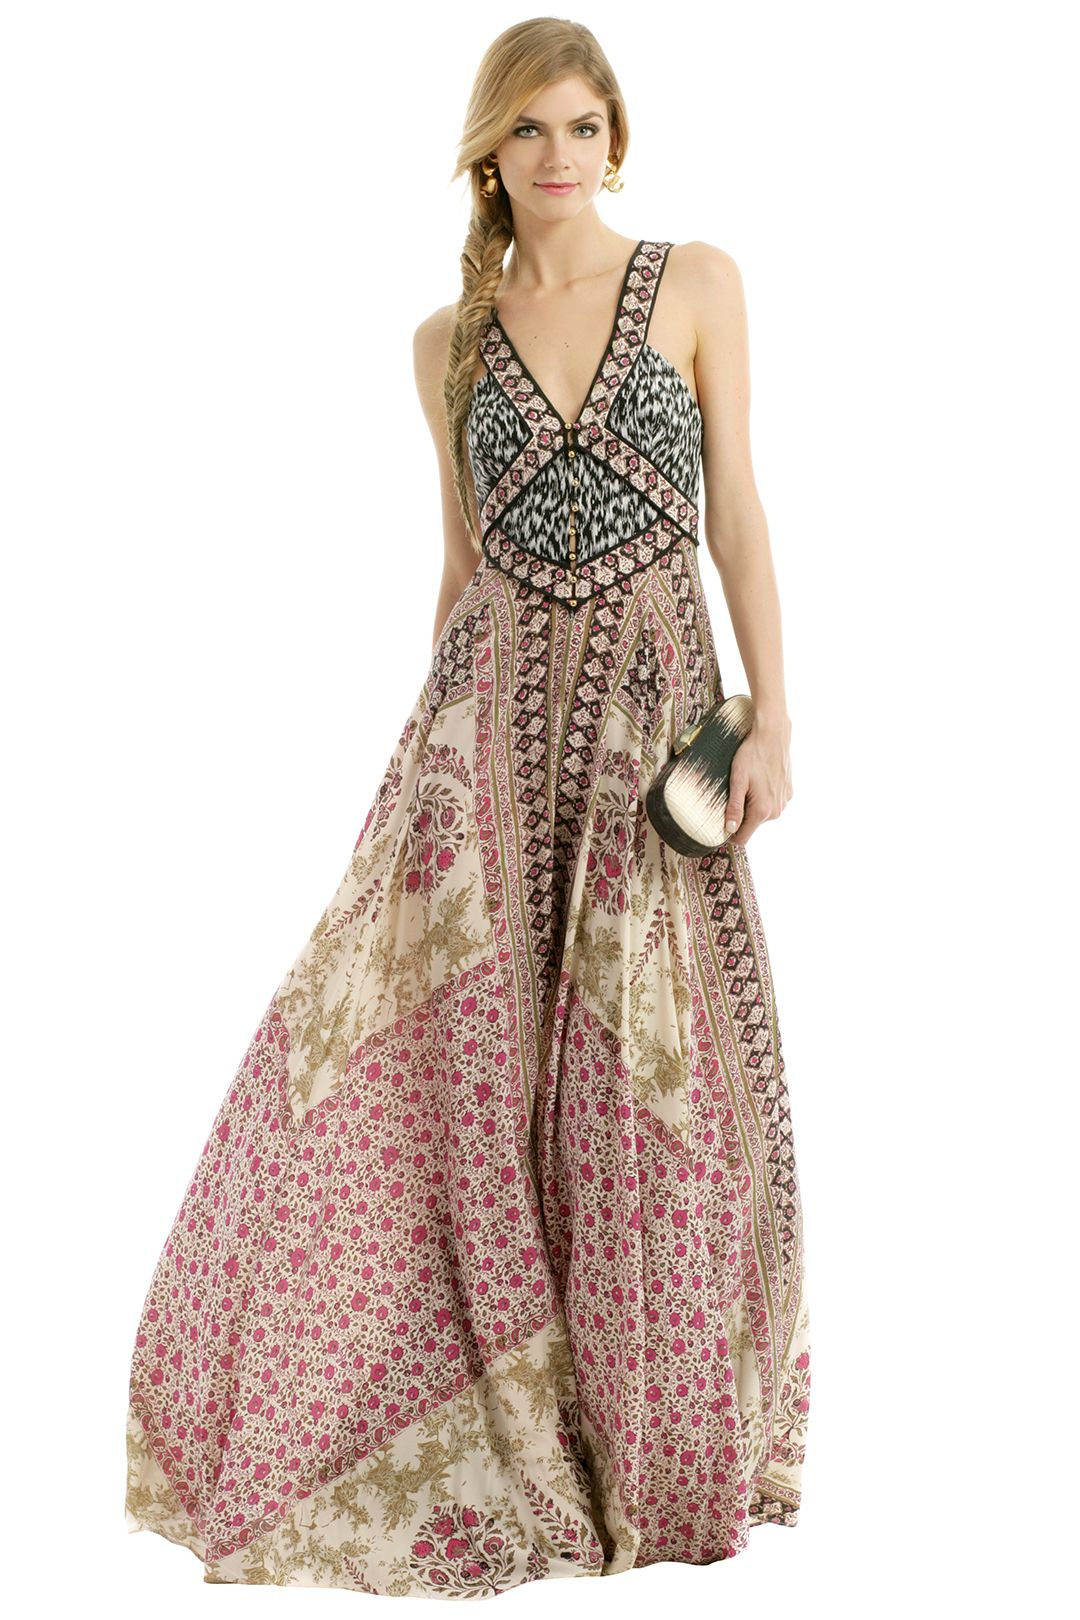 d76435b32a893 Strut your stuff without trading comfort for style in a boho chic maxi  dress.  StripStyle